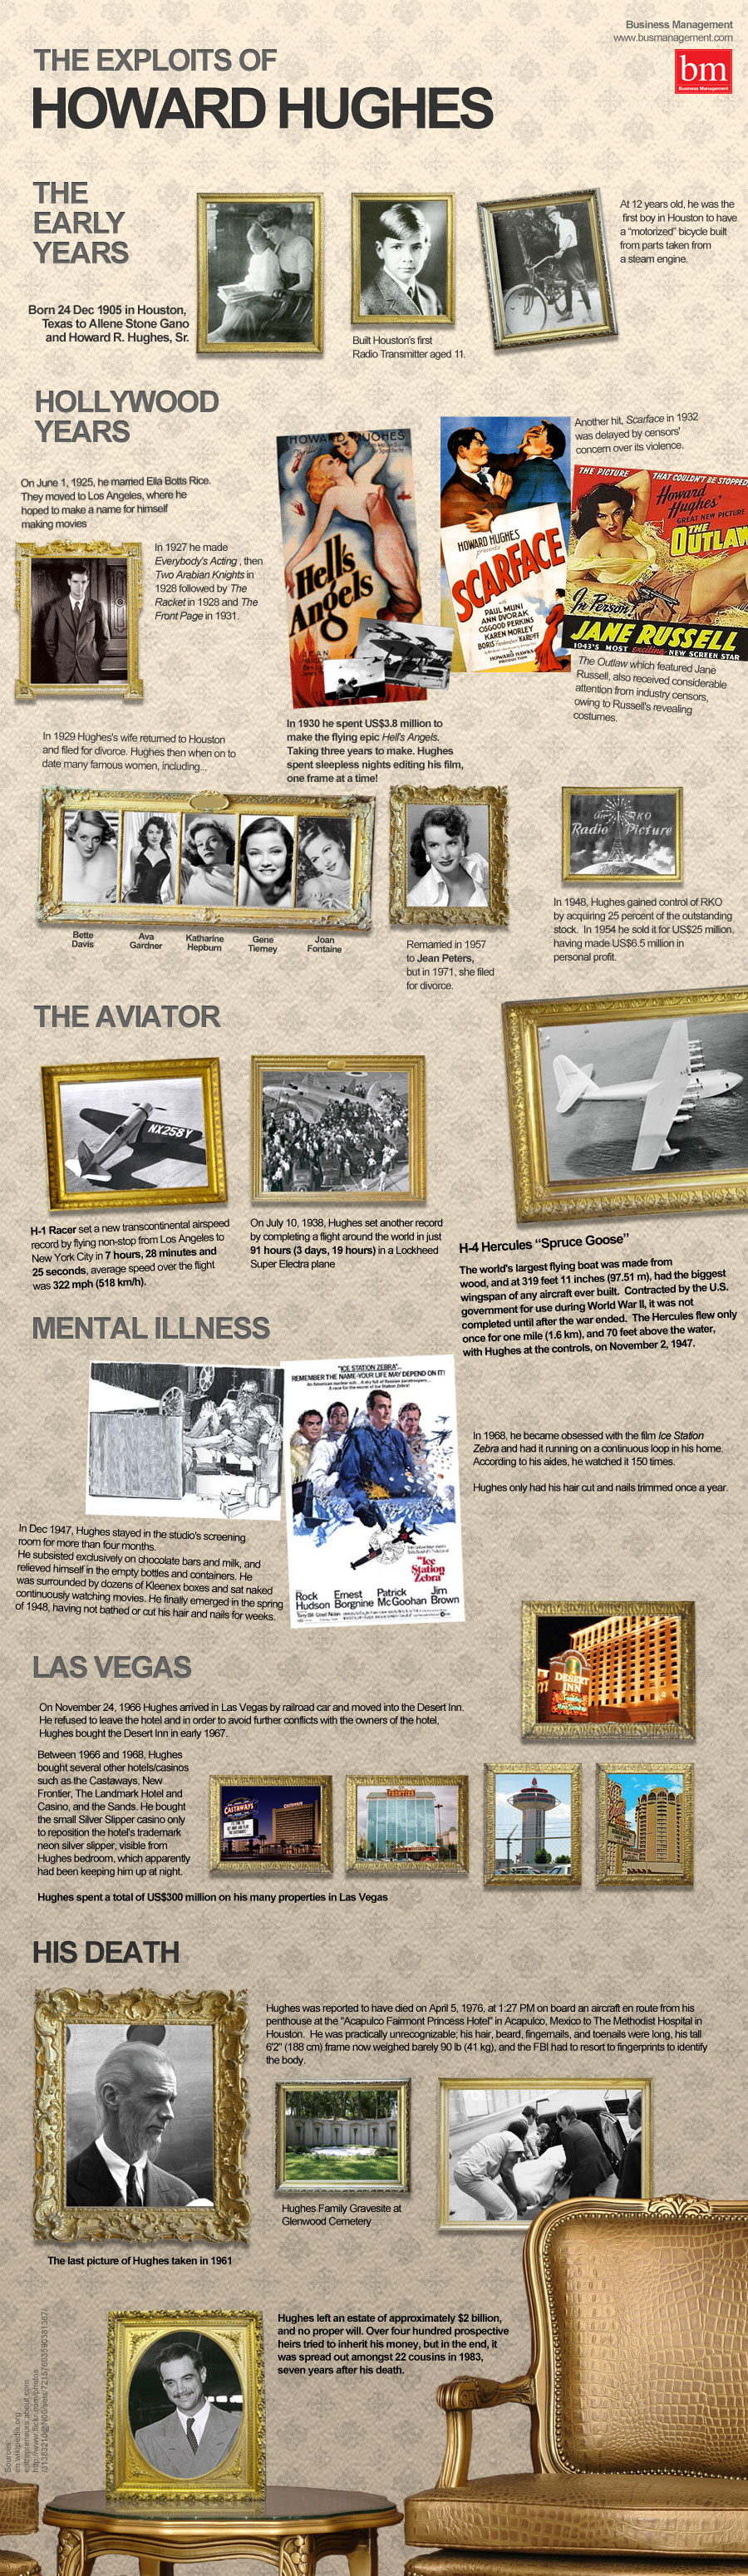 howard-hughes-infographic